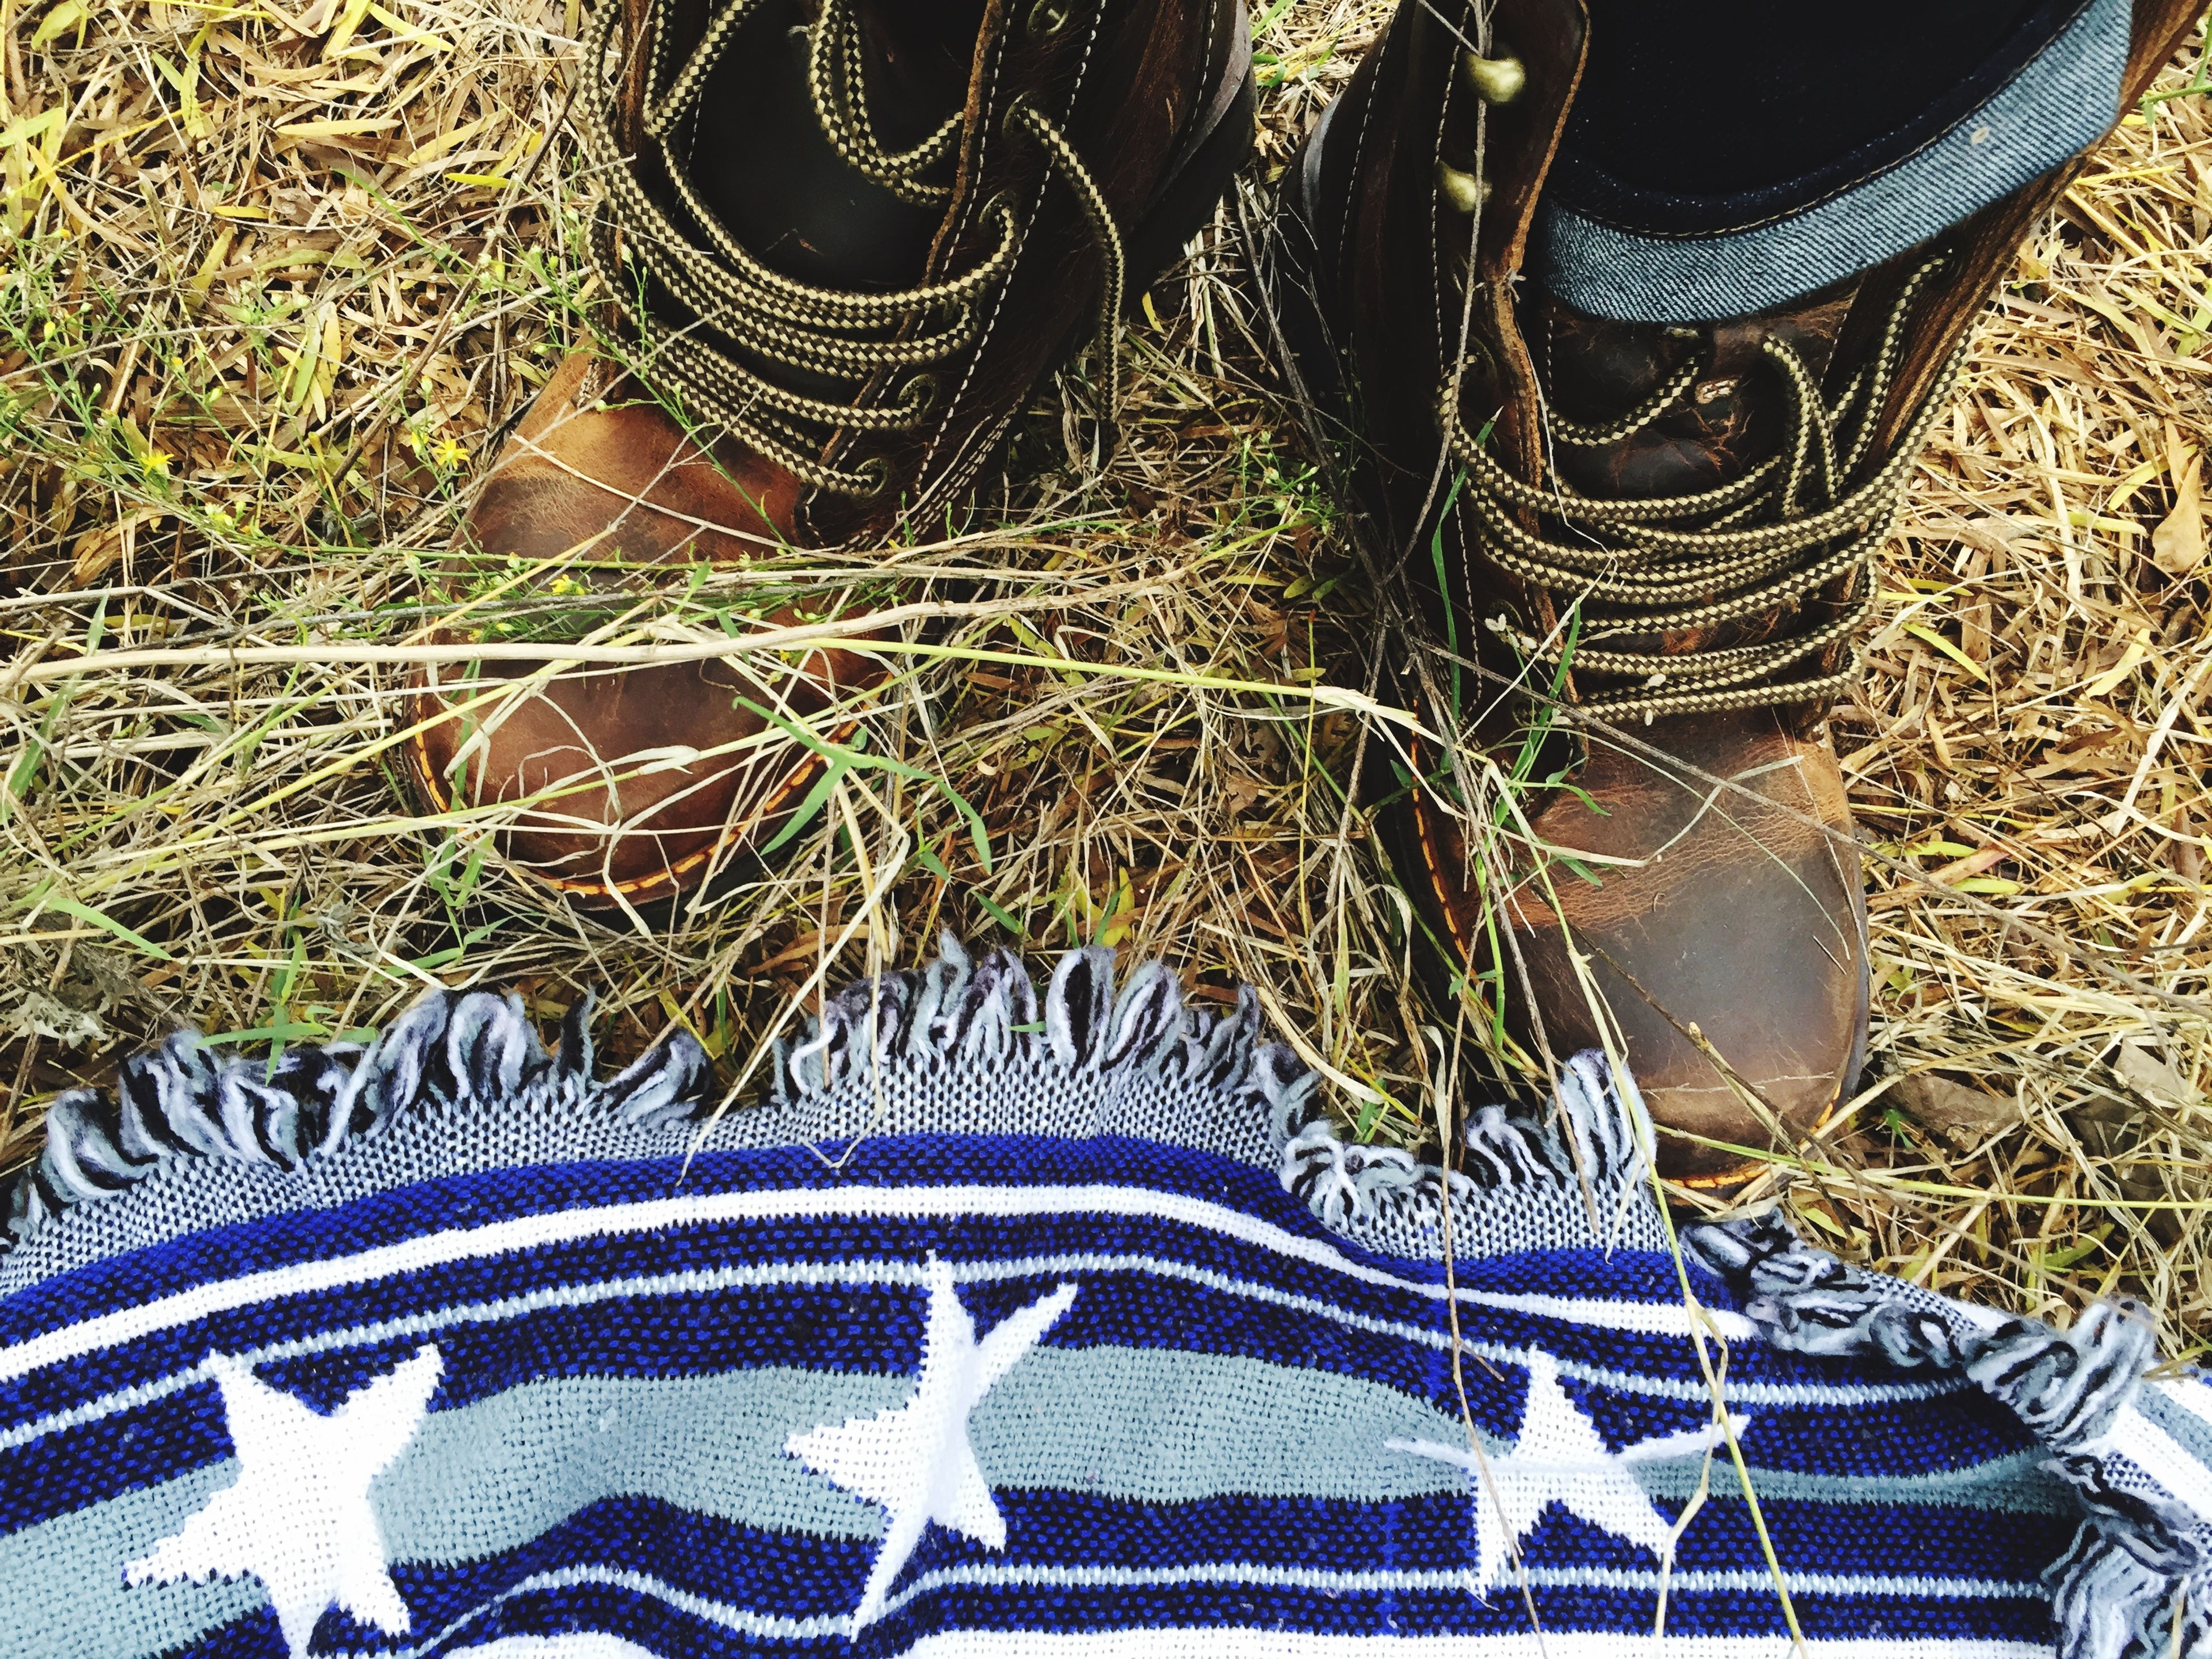 high angle view, shoe, pattern, low section, close-up, design, person, footwear, part of, creativity, art and craft, directly above, blue, pair, outdoors, jeans, full frame, field, grass, day